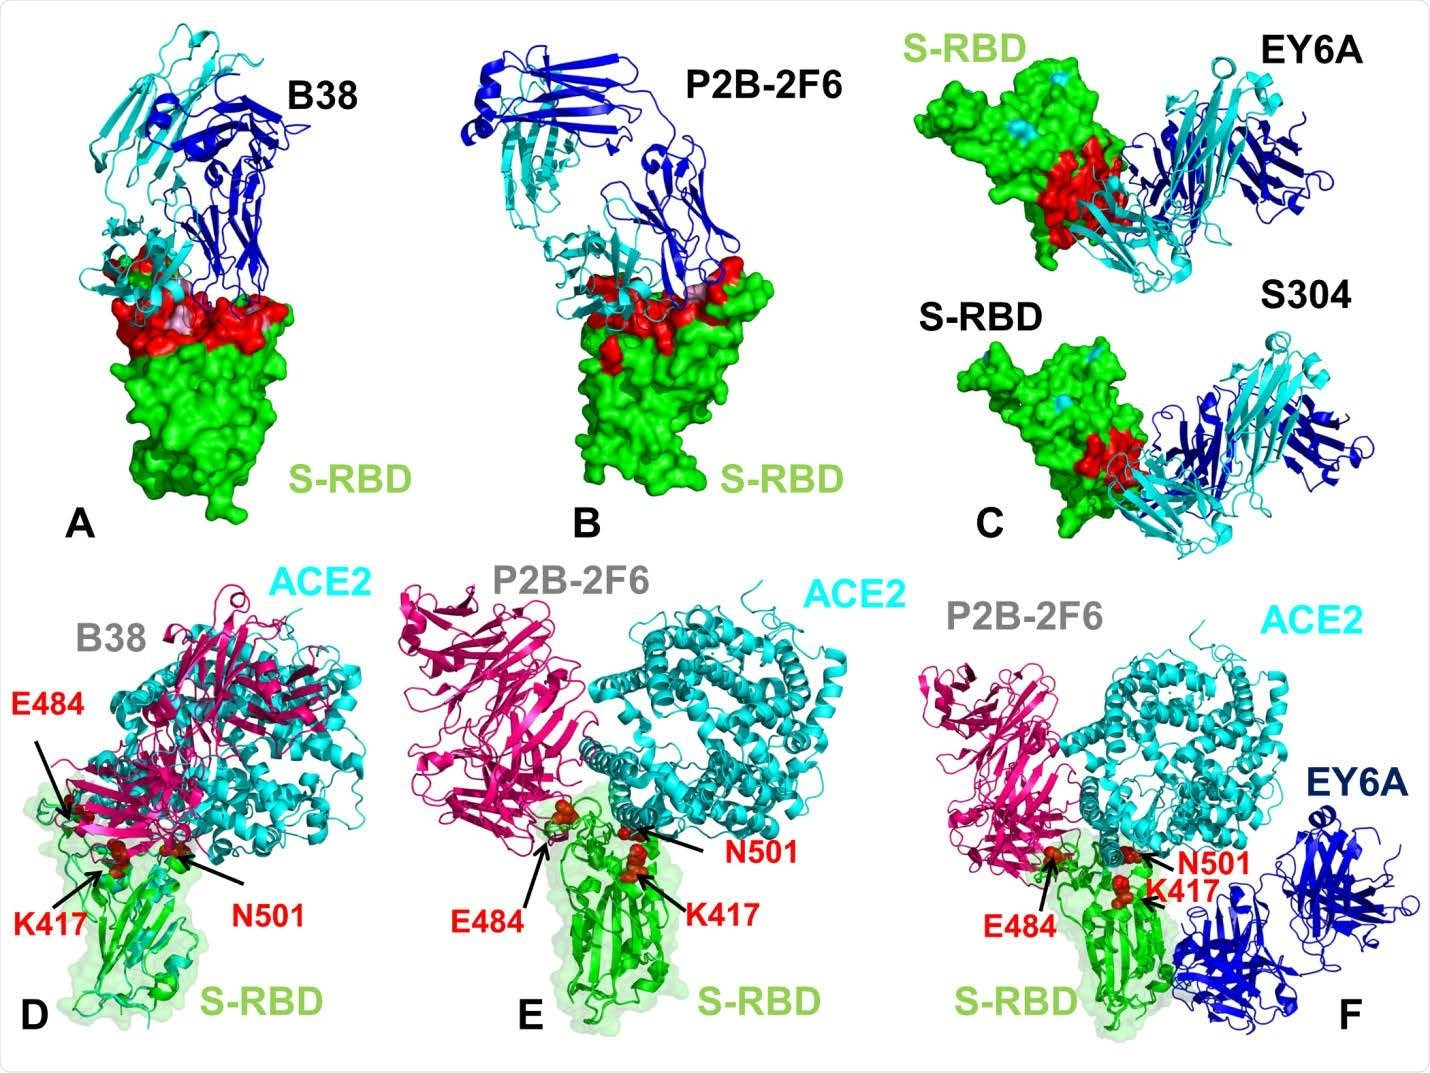 The structures of the SARS-CoV-2 S-RBD complexes with a panel of antibodies used in this study. (A) The structure of the SARS-CoV-2 S-RBD complex with B38 (pdb id 7BZ5). (B) The structure of the SARS-CoV-2 S-RBD complex with P2B-2F6 (pdb id 7BWJ). (C) The structures of the SARS-CoV-2 S-RBD complex with EY6A (pdb id 6ZER,6ZCZ)36 and S304 antibodies. S-RBD is shown in green surface and the binding epitopes are colored in red. The antibodies are shown in ribbons with heavy chain colored in blue and light chain in cyan. (D) Structural superposition of the B38 antibody ( in pink ribbons) and ACE2 host receptor (in cyan ribbons) bound to S-RBD ( in green ribbons and surface with reduced transparency). (E) Structural superposition of the P2B-2F6 antibody ( in pink ribbons) and ACE2 host receptor (in cyan ribbons) bound to S-RBD (in green ribbons). (F) Structural superposition of the P2B-2F6 antibody (in pink ribbons), ACE2 host receptor (in cyan ribbons) and EY6A (in blue ribbons) bound to S-RBD (in green ribbons). The positions are sites K417, E484 and N501 subjected to circulating mutational variants are shown in red spheres and annotated.